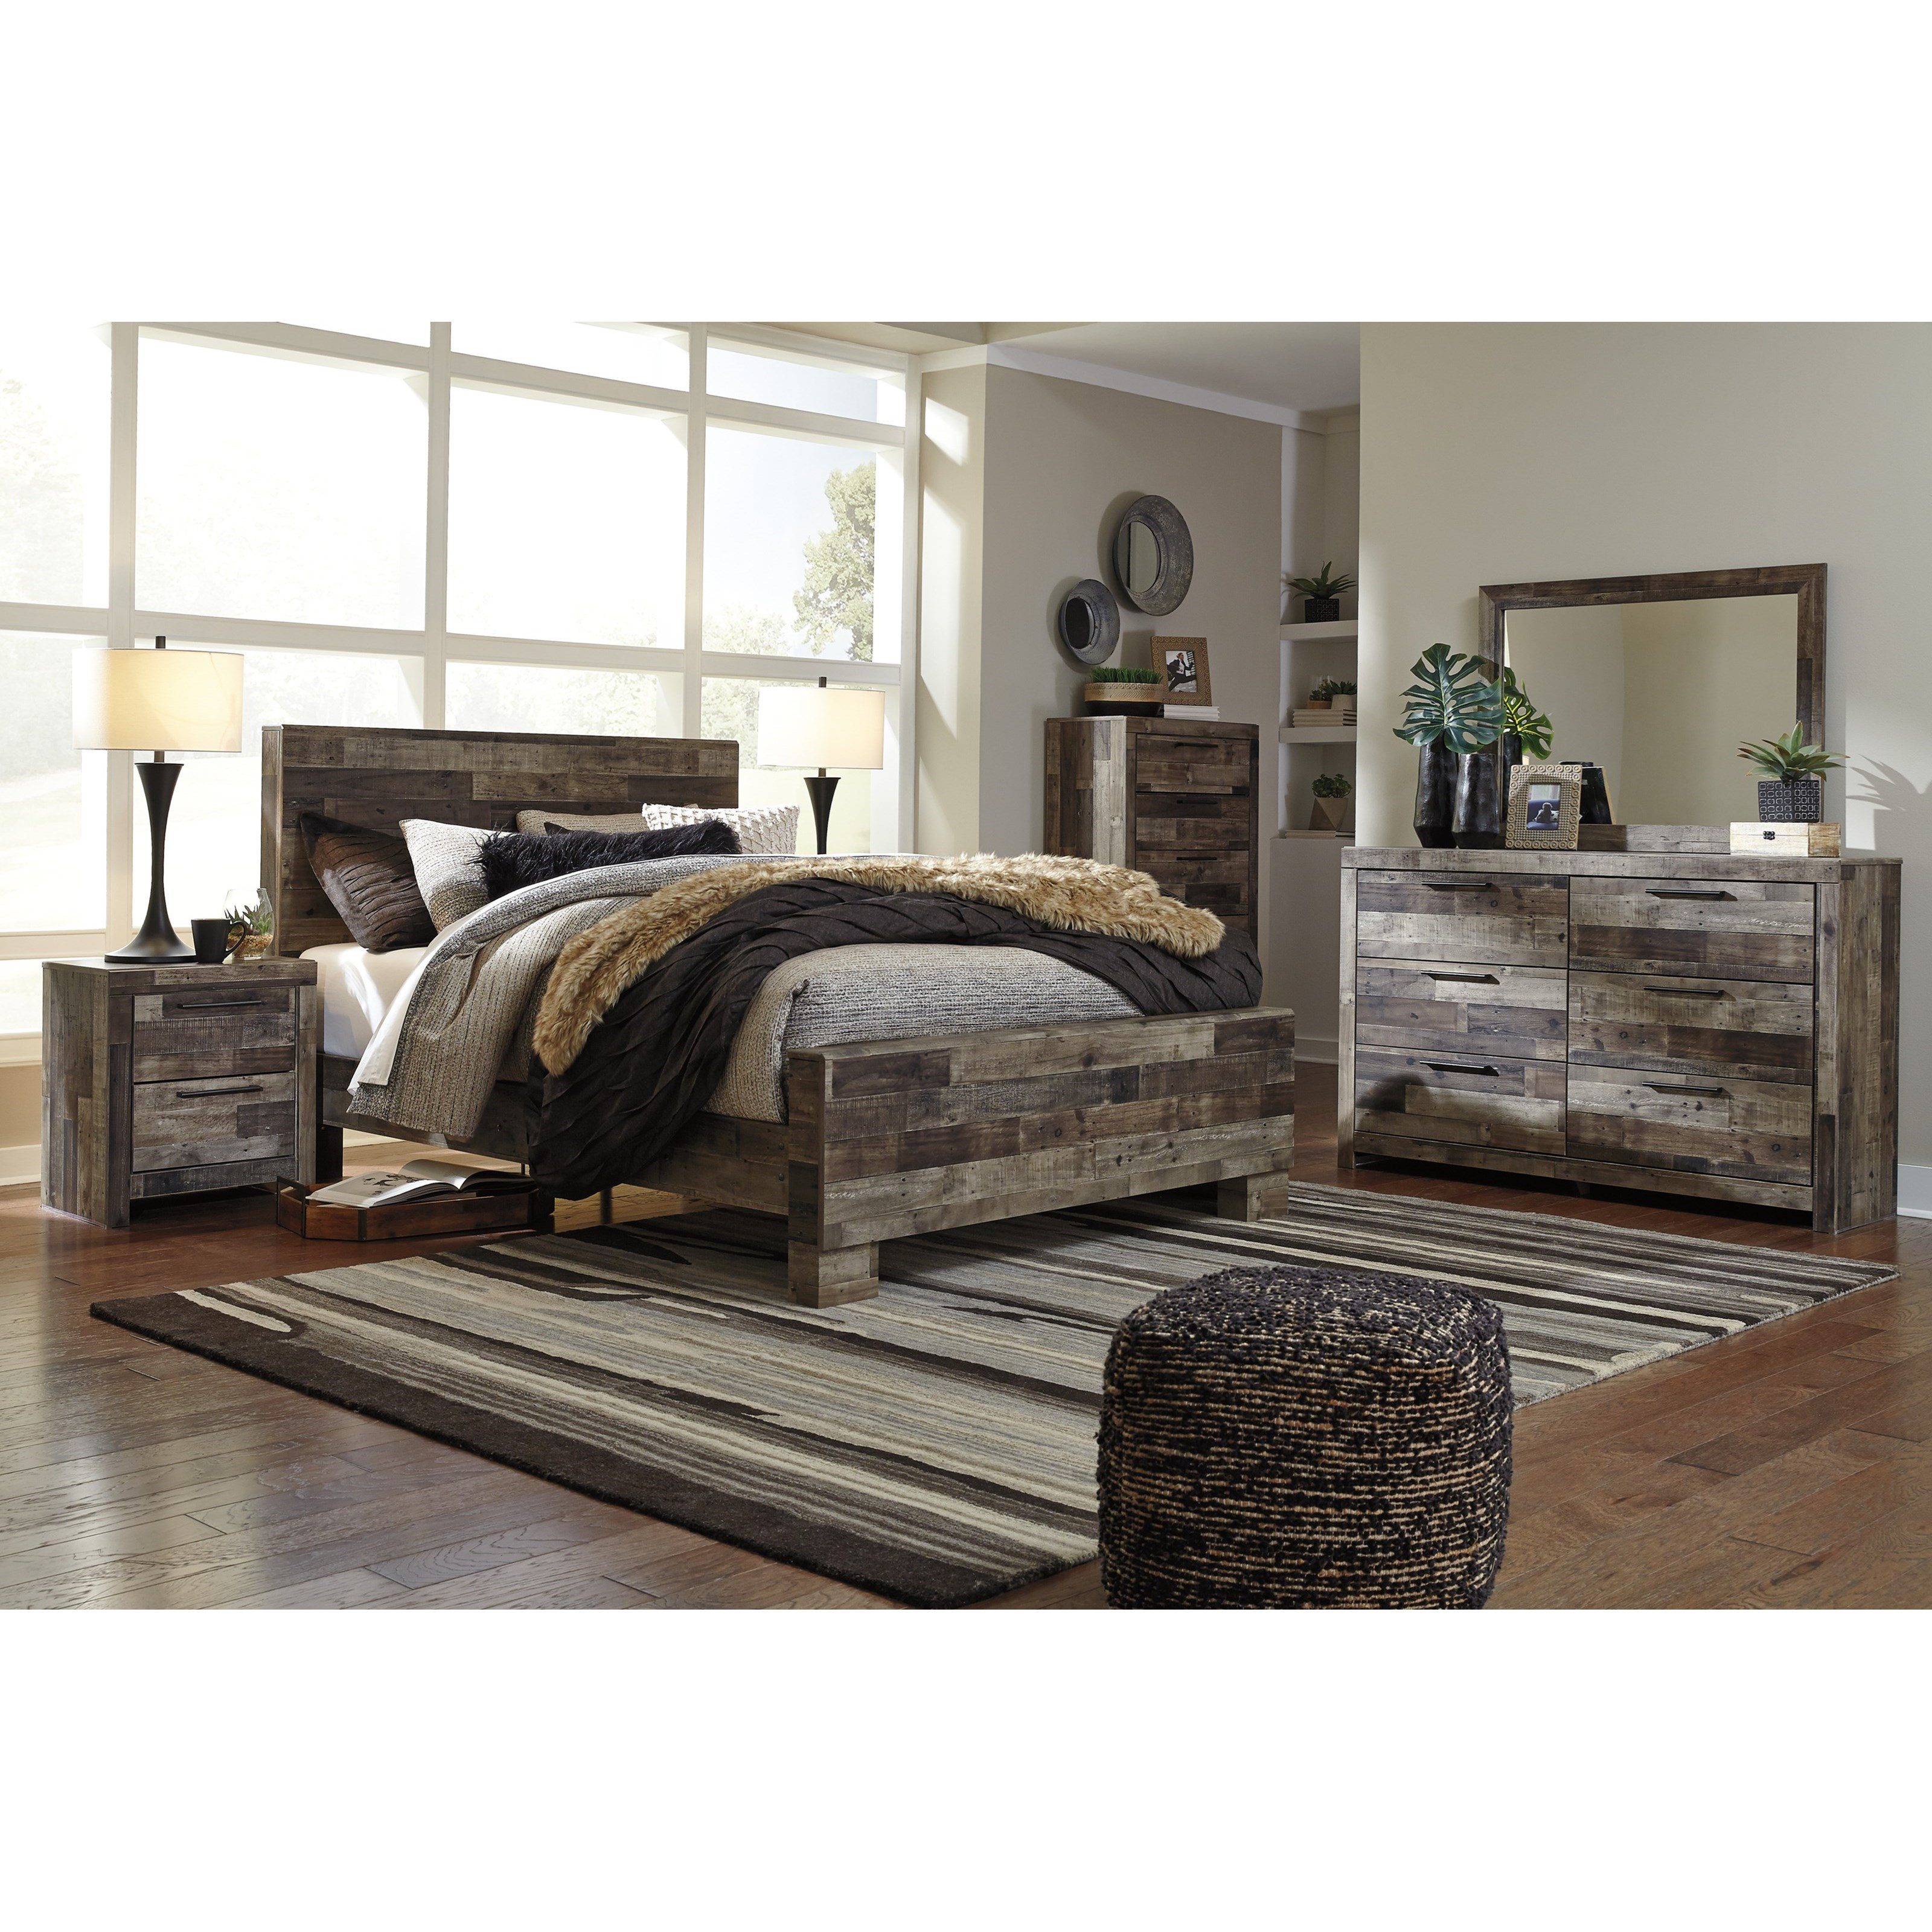 Derekson Twin Bedroom Group by Benchcraft at Johnny Janosik